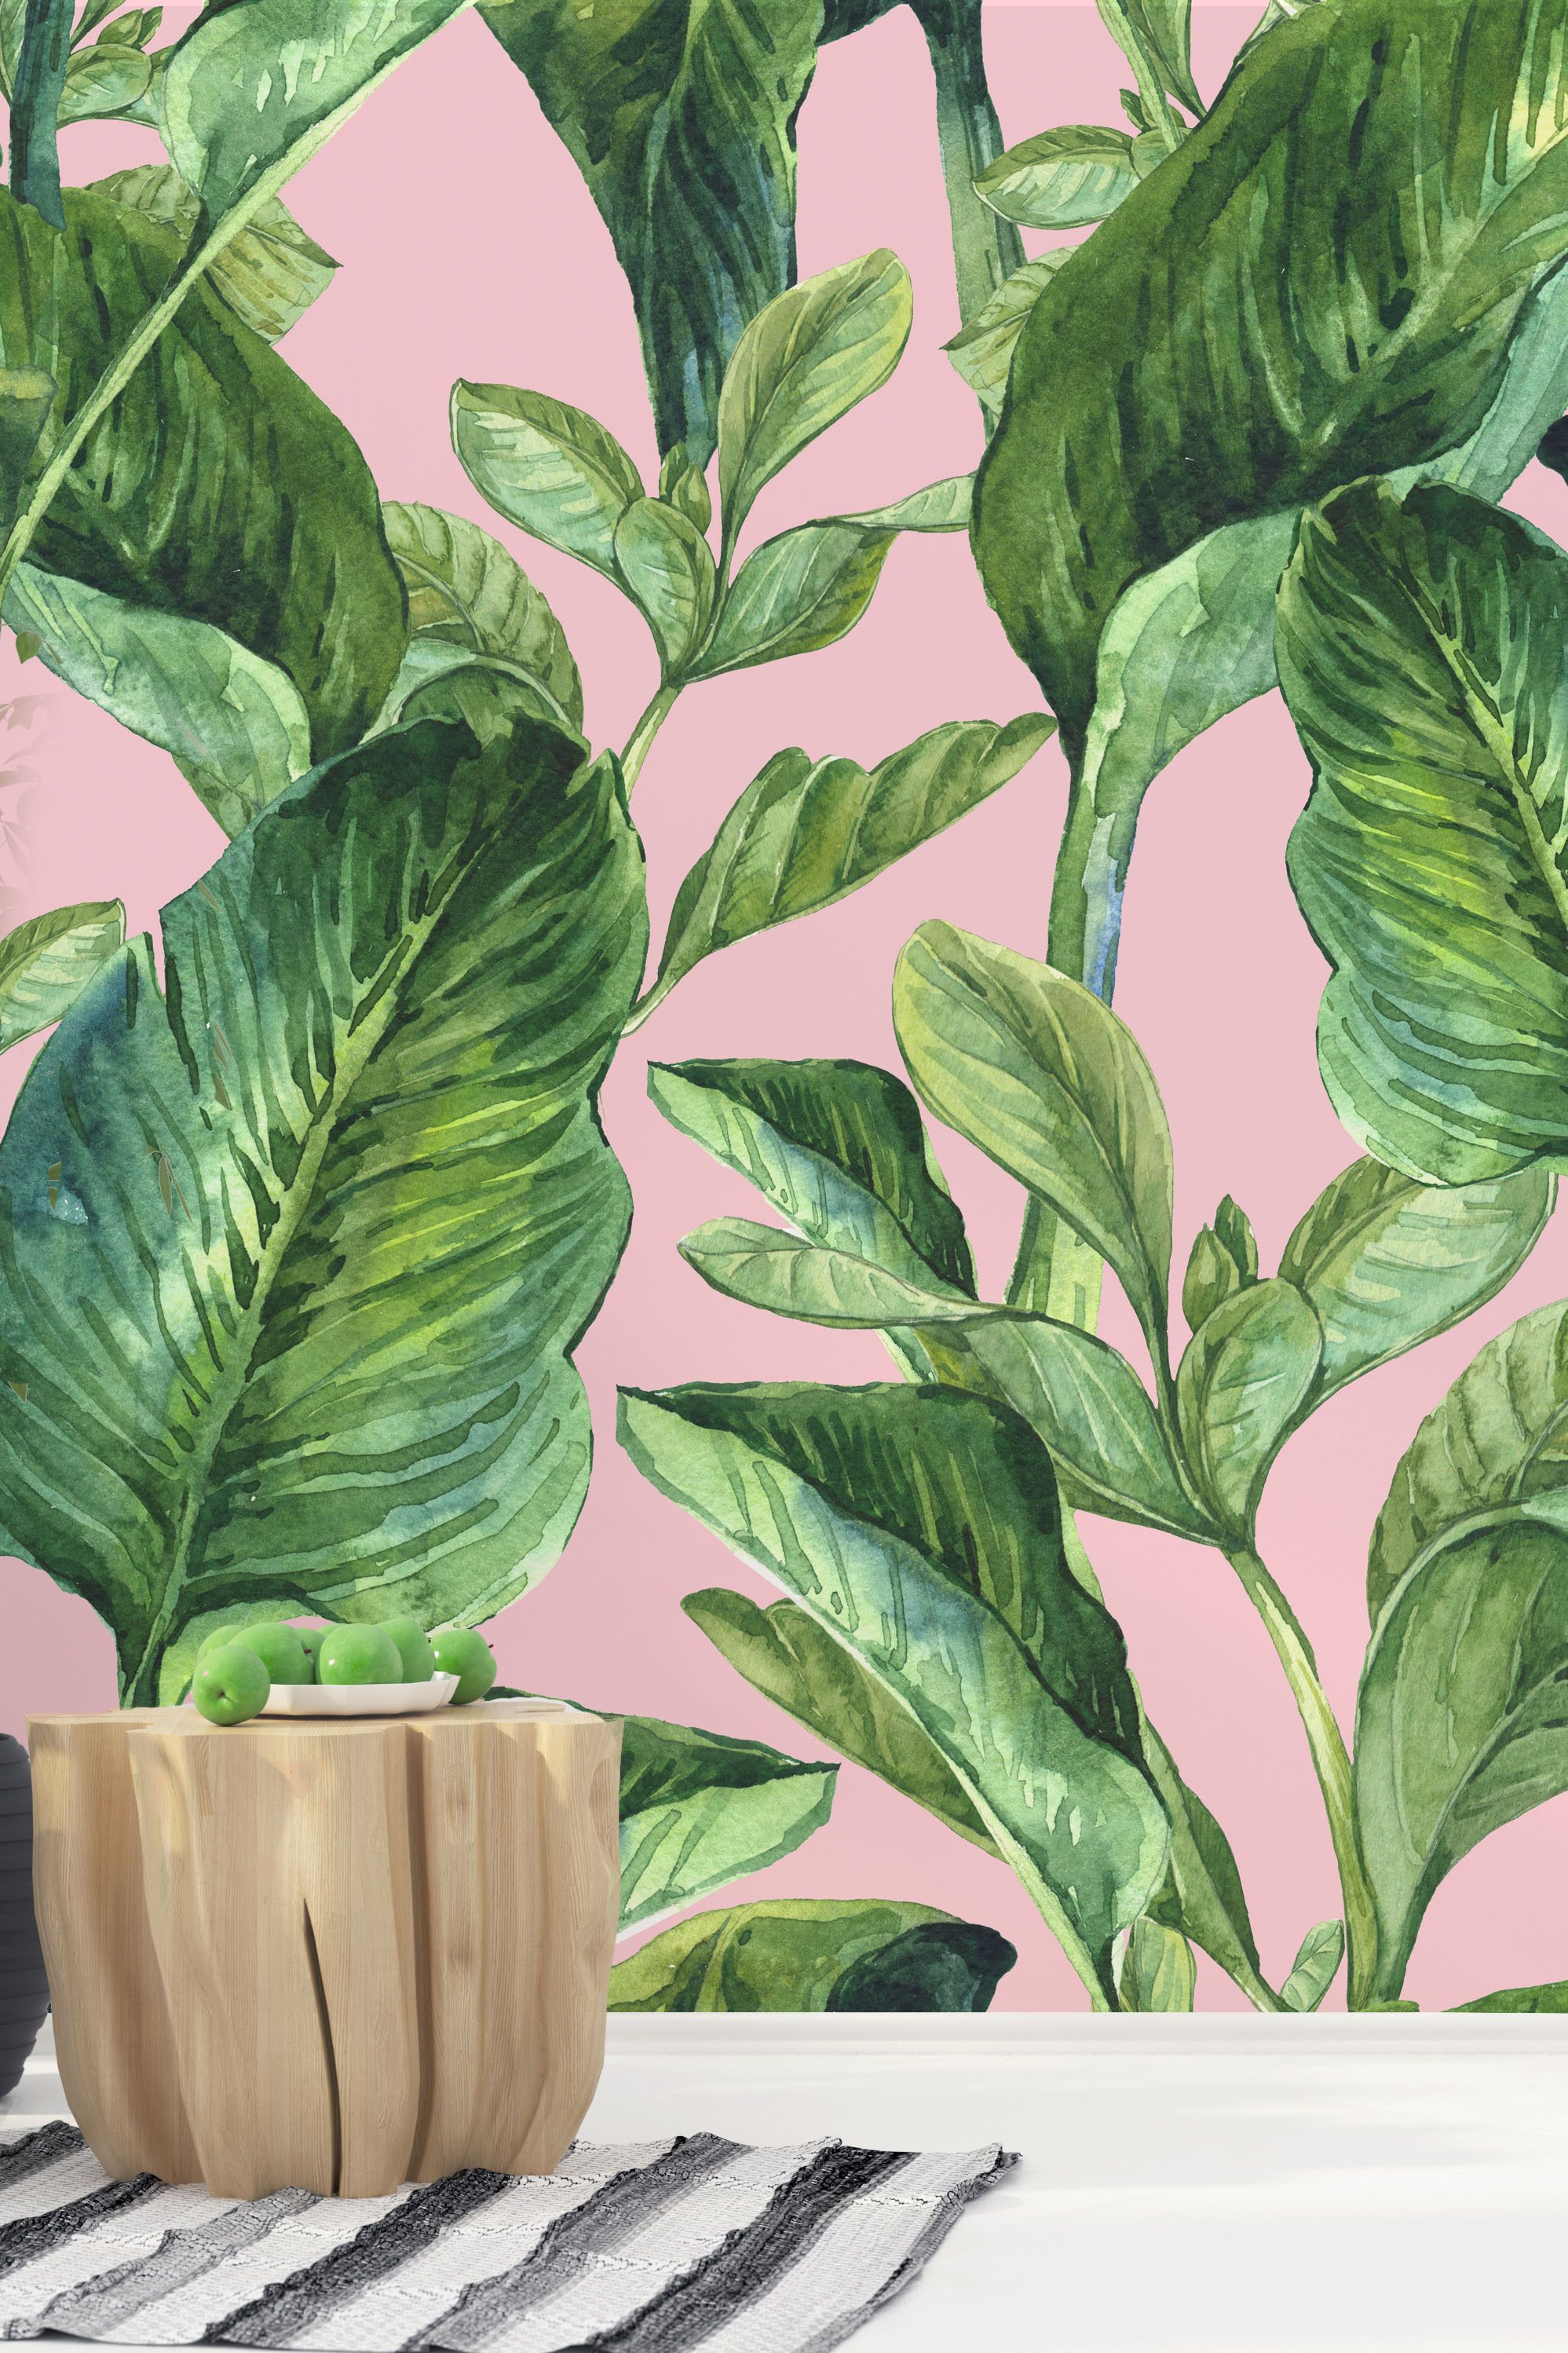 Banana Leaves Pink Wallpaper in 2020 Pink wallpaper